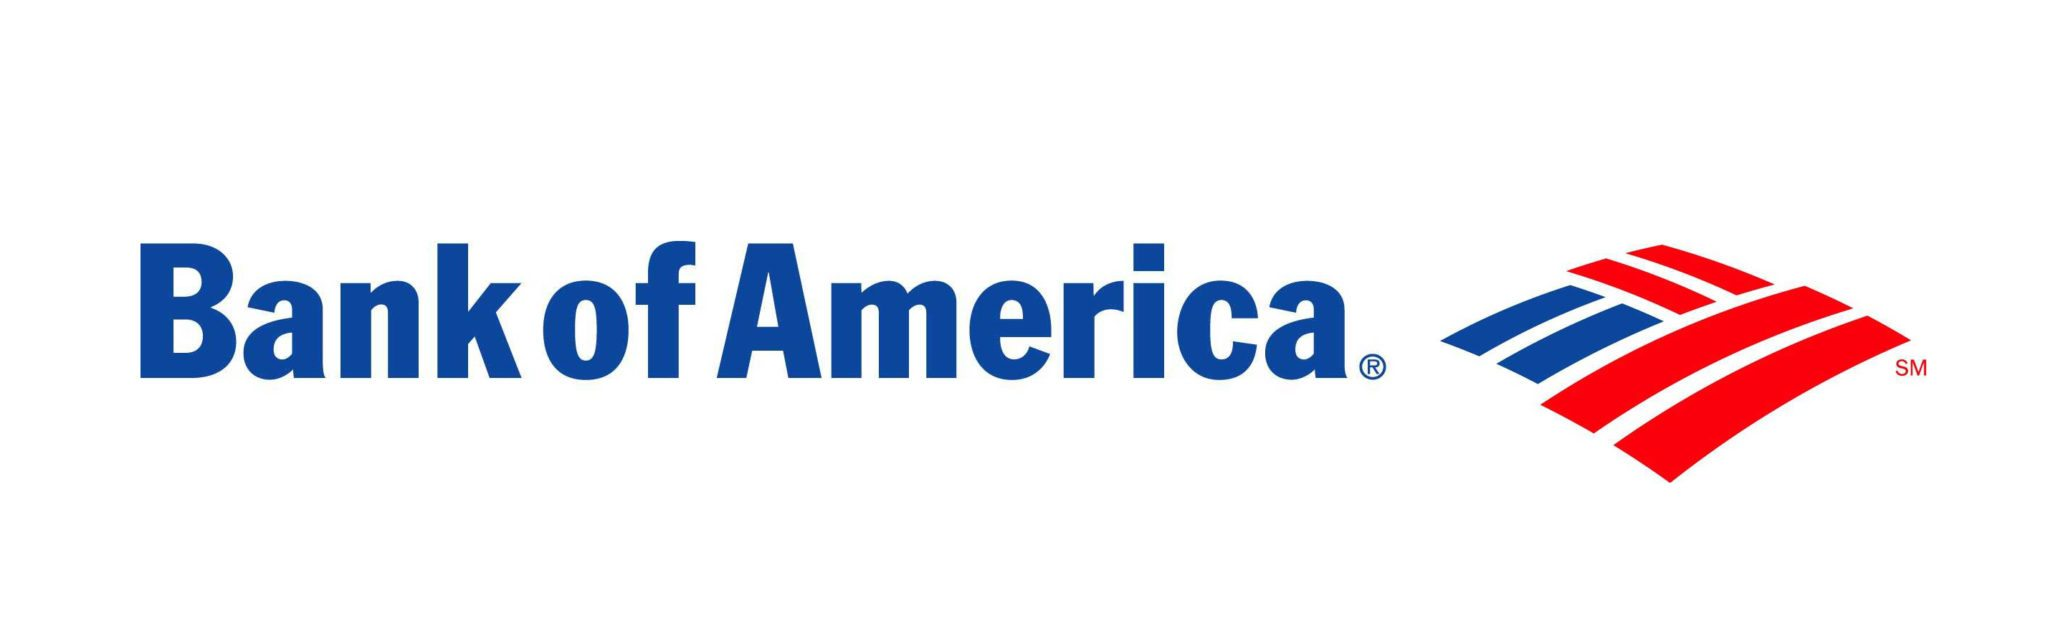 Bank Of America Customer Service contact phone number